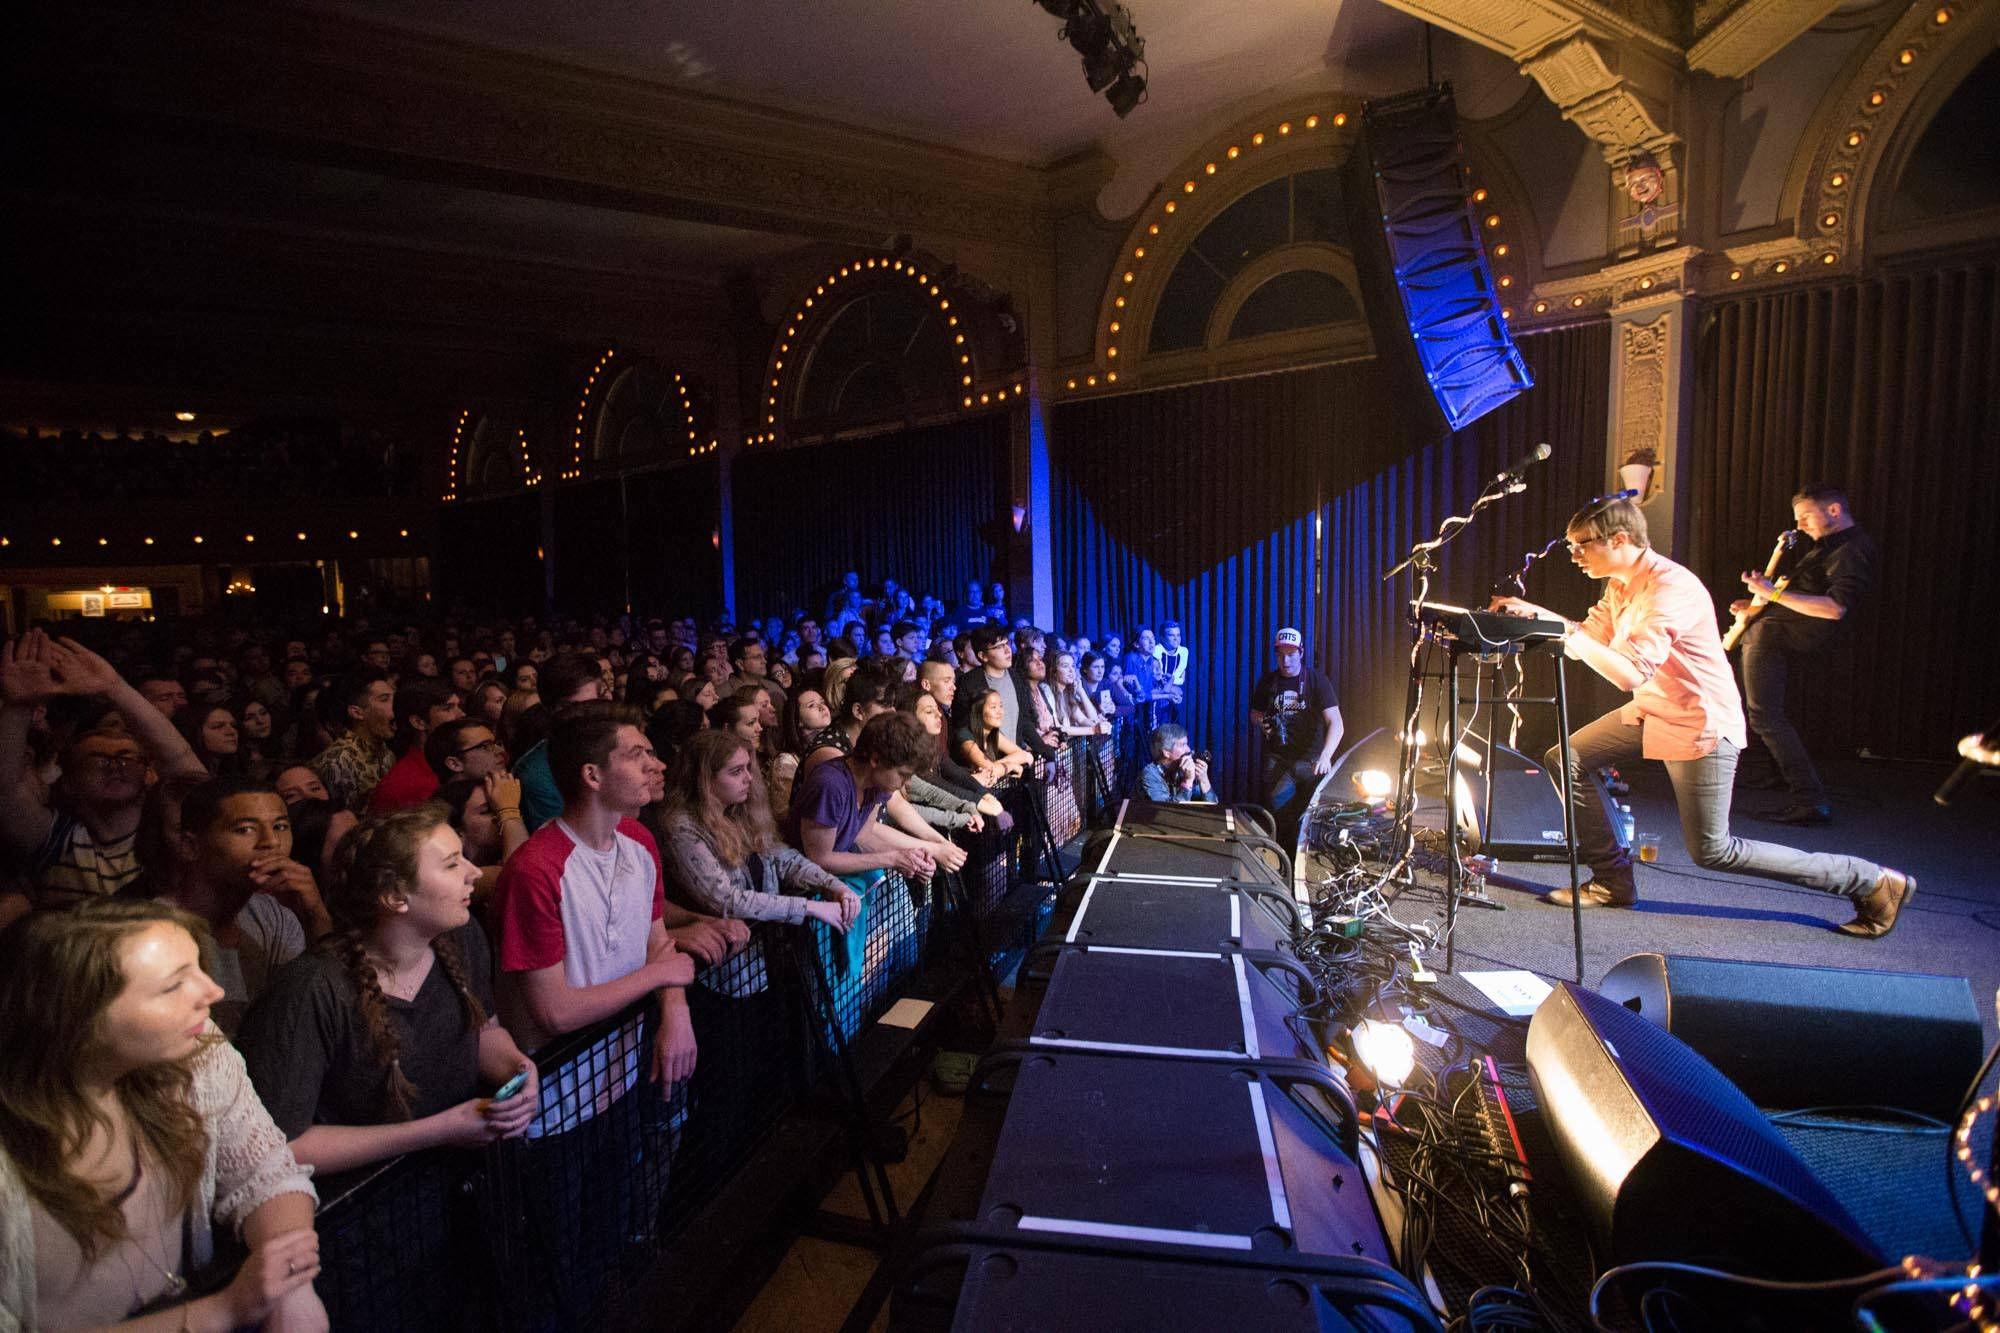 Saint Motel at the Crystal Ballroom, Portland, Apr. 4 2015. Kirk Chantraine photo.